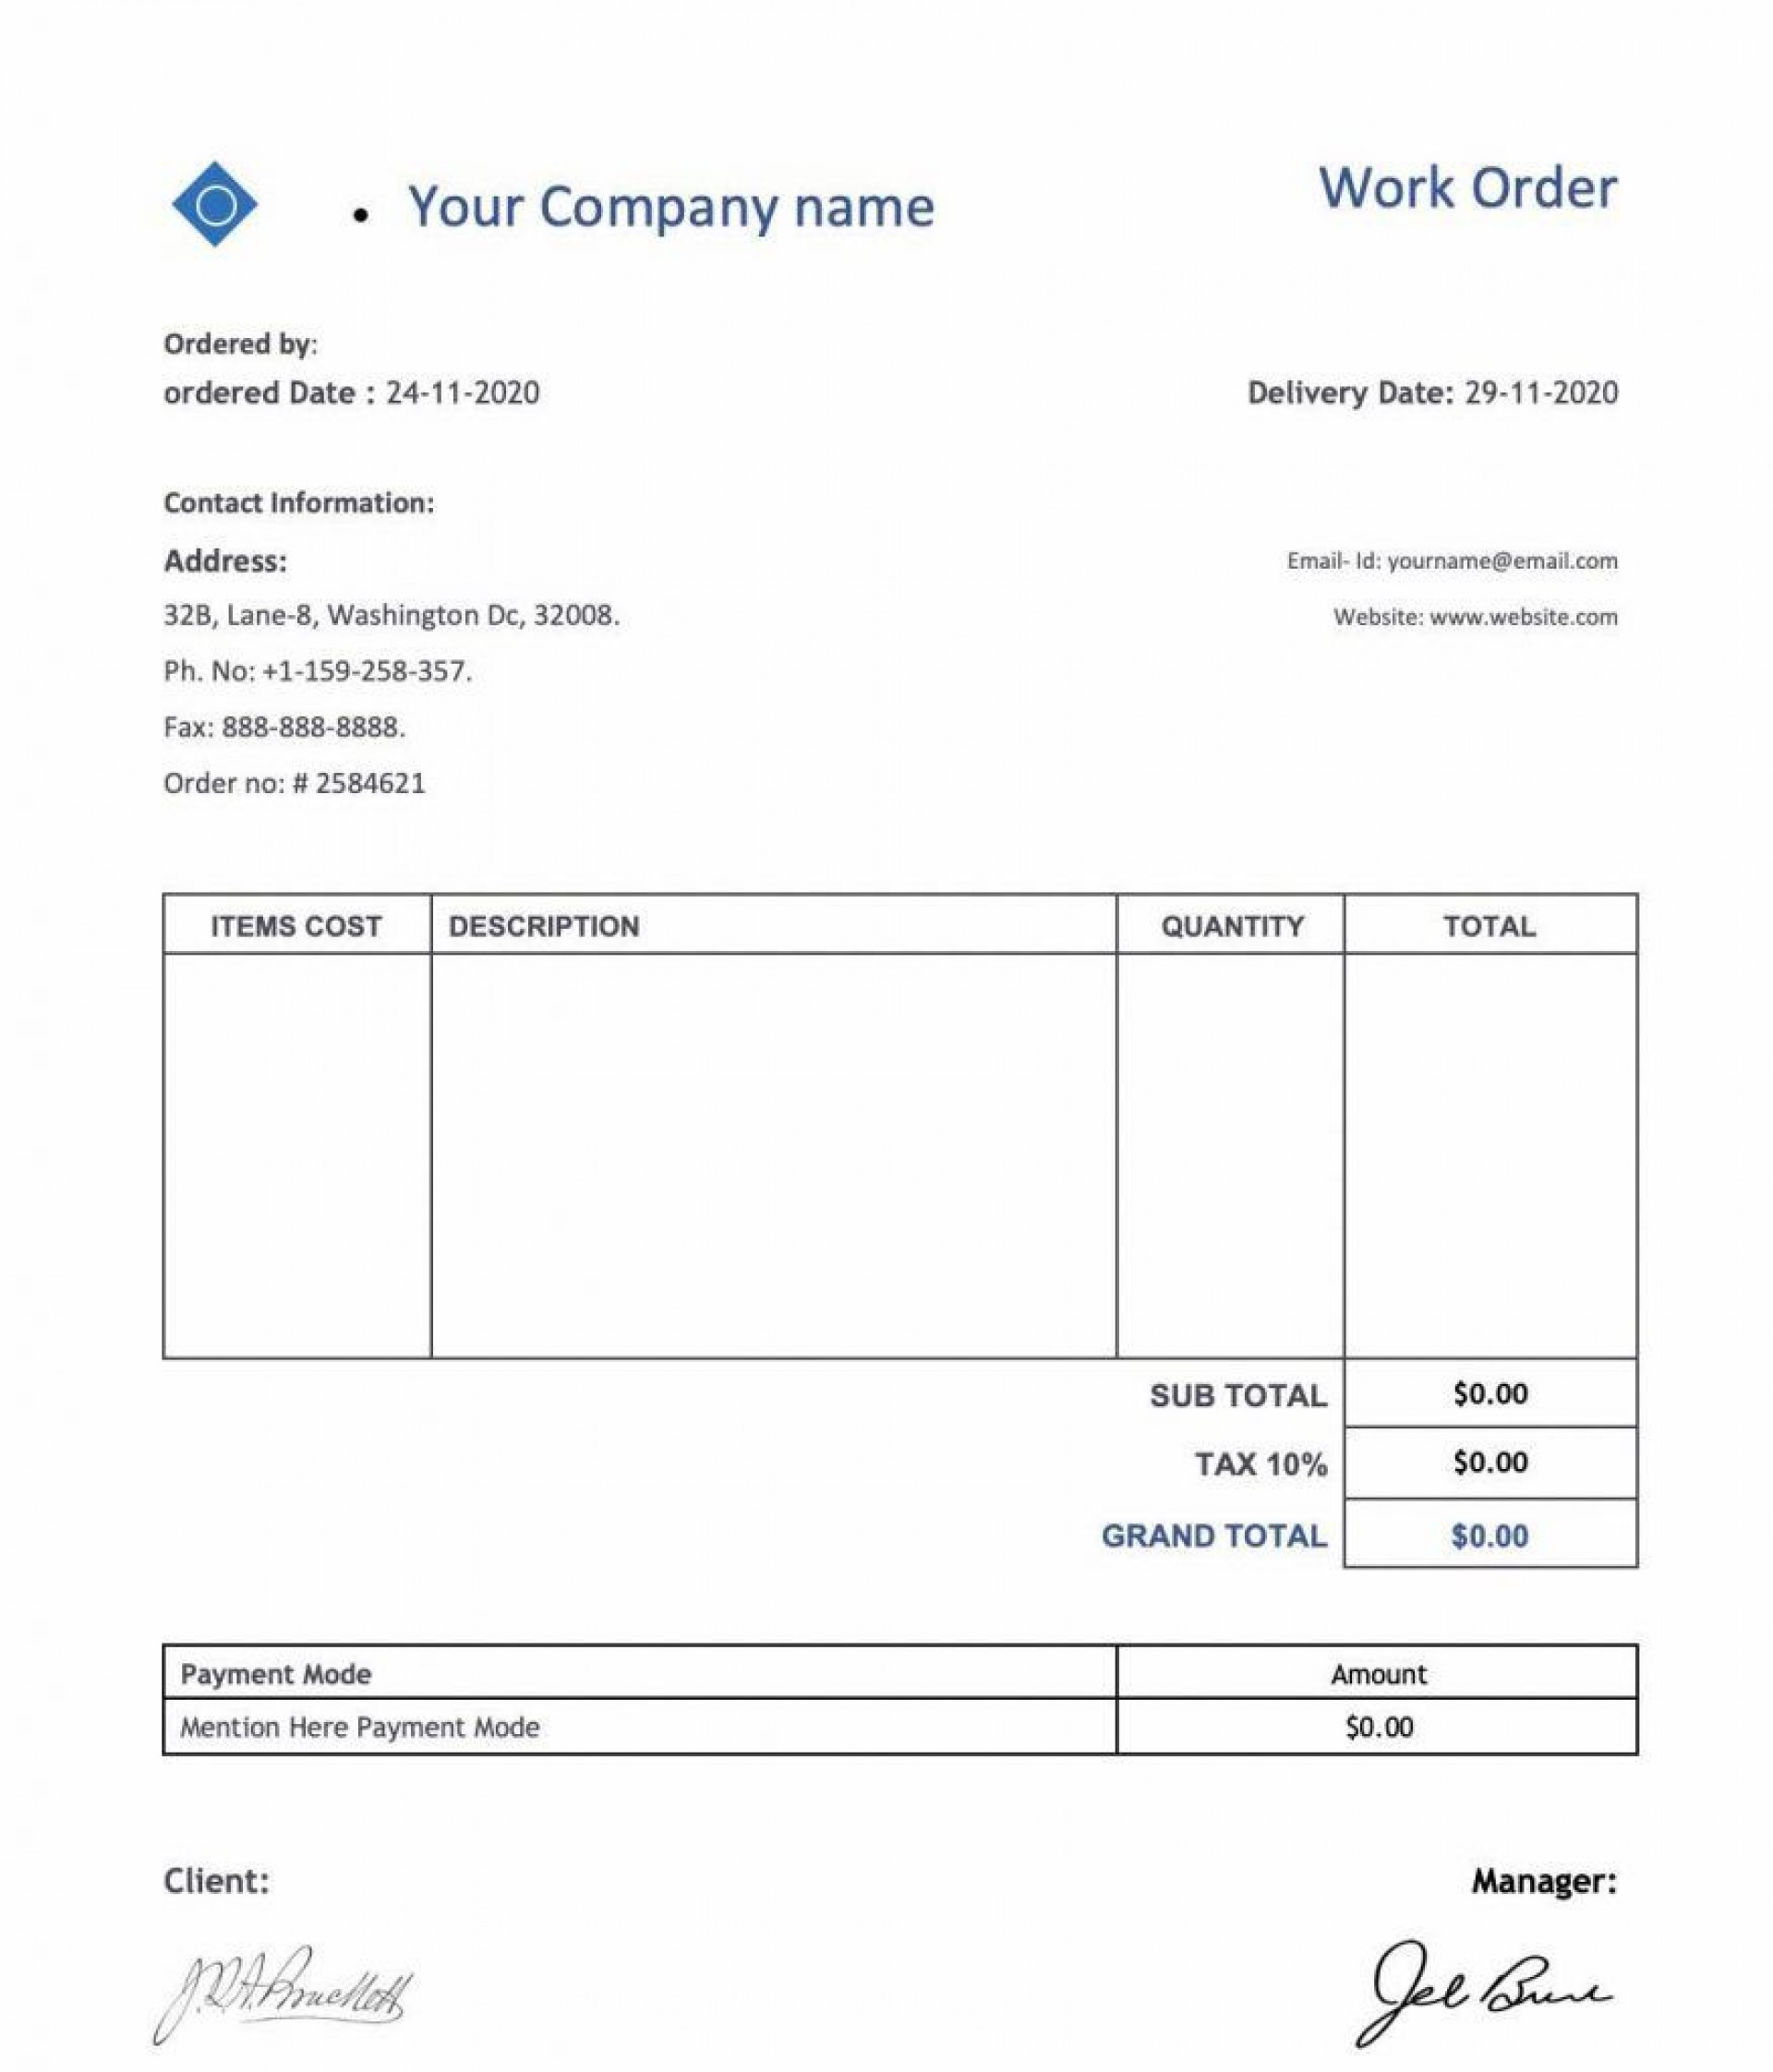 004 Incredible Excel Spreadsheet Work Order Template Example 1920